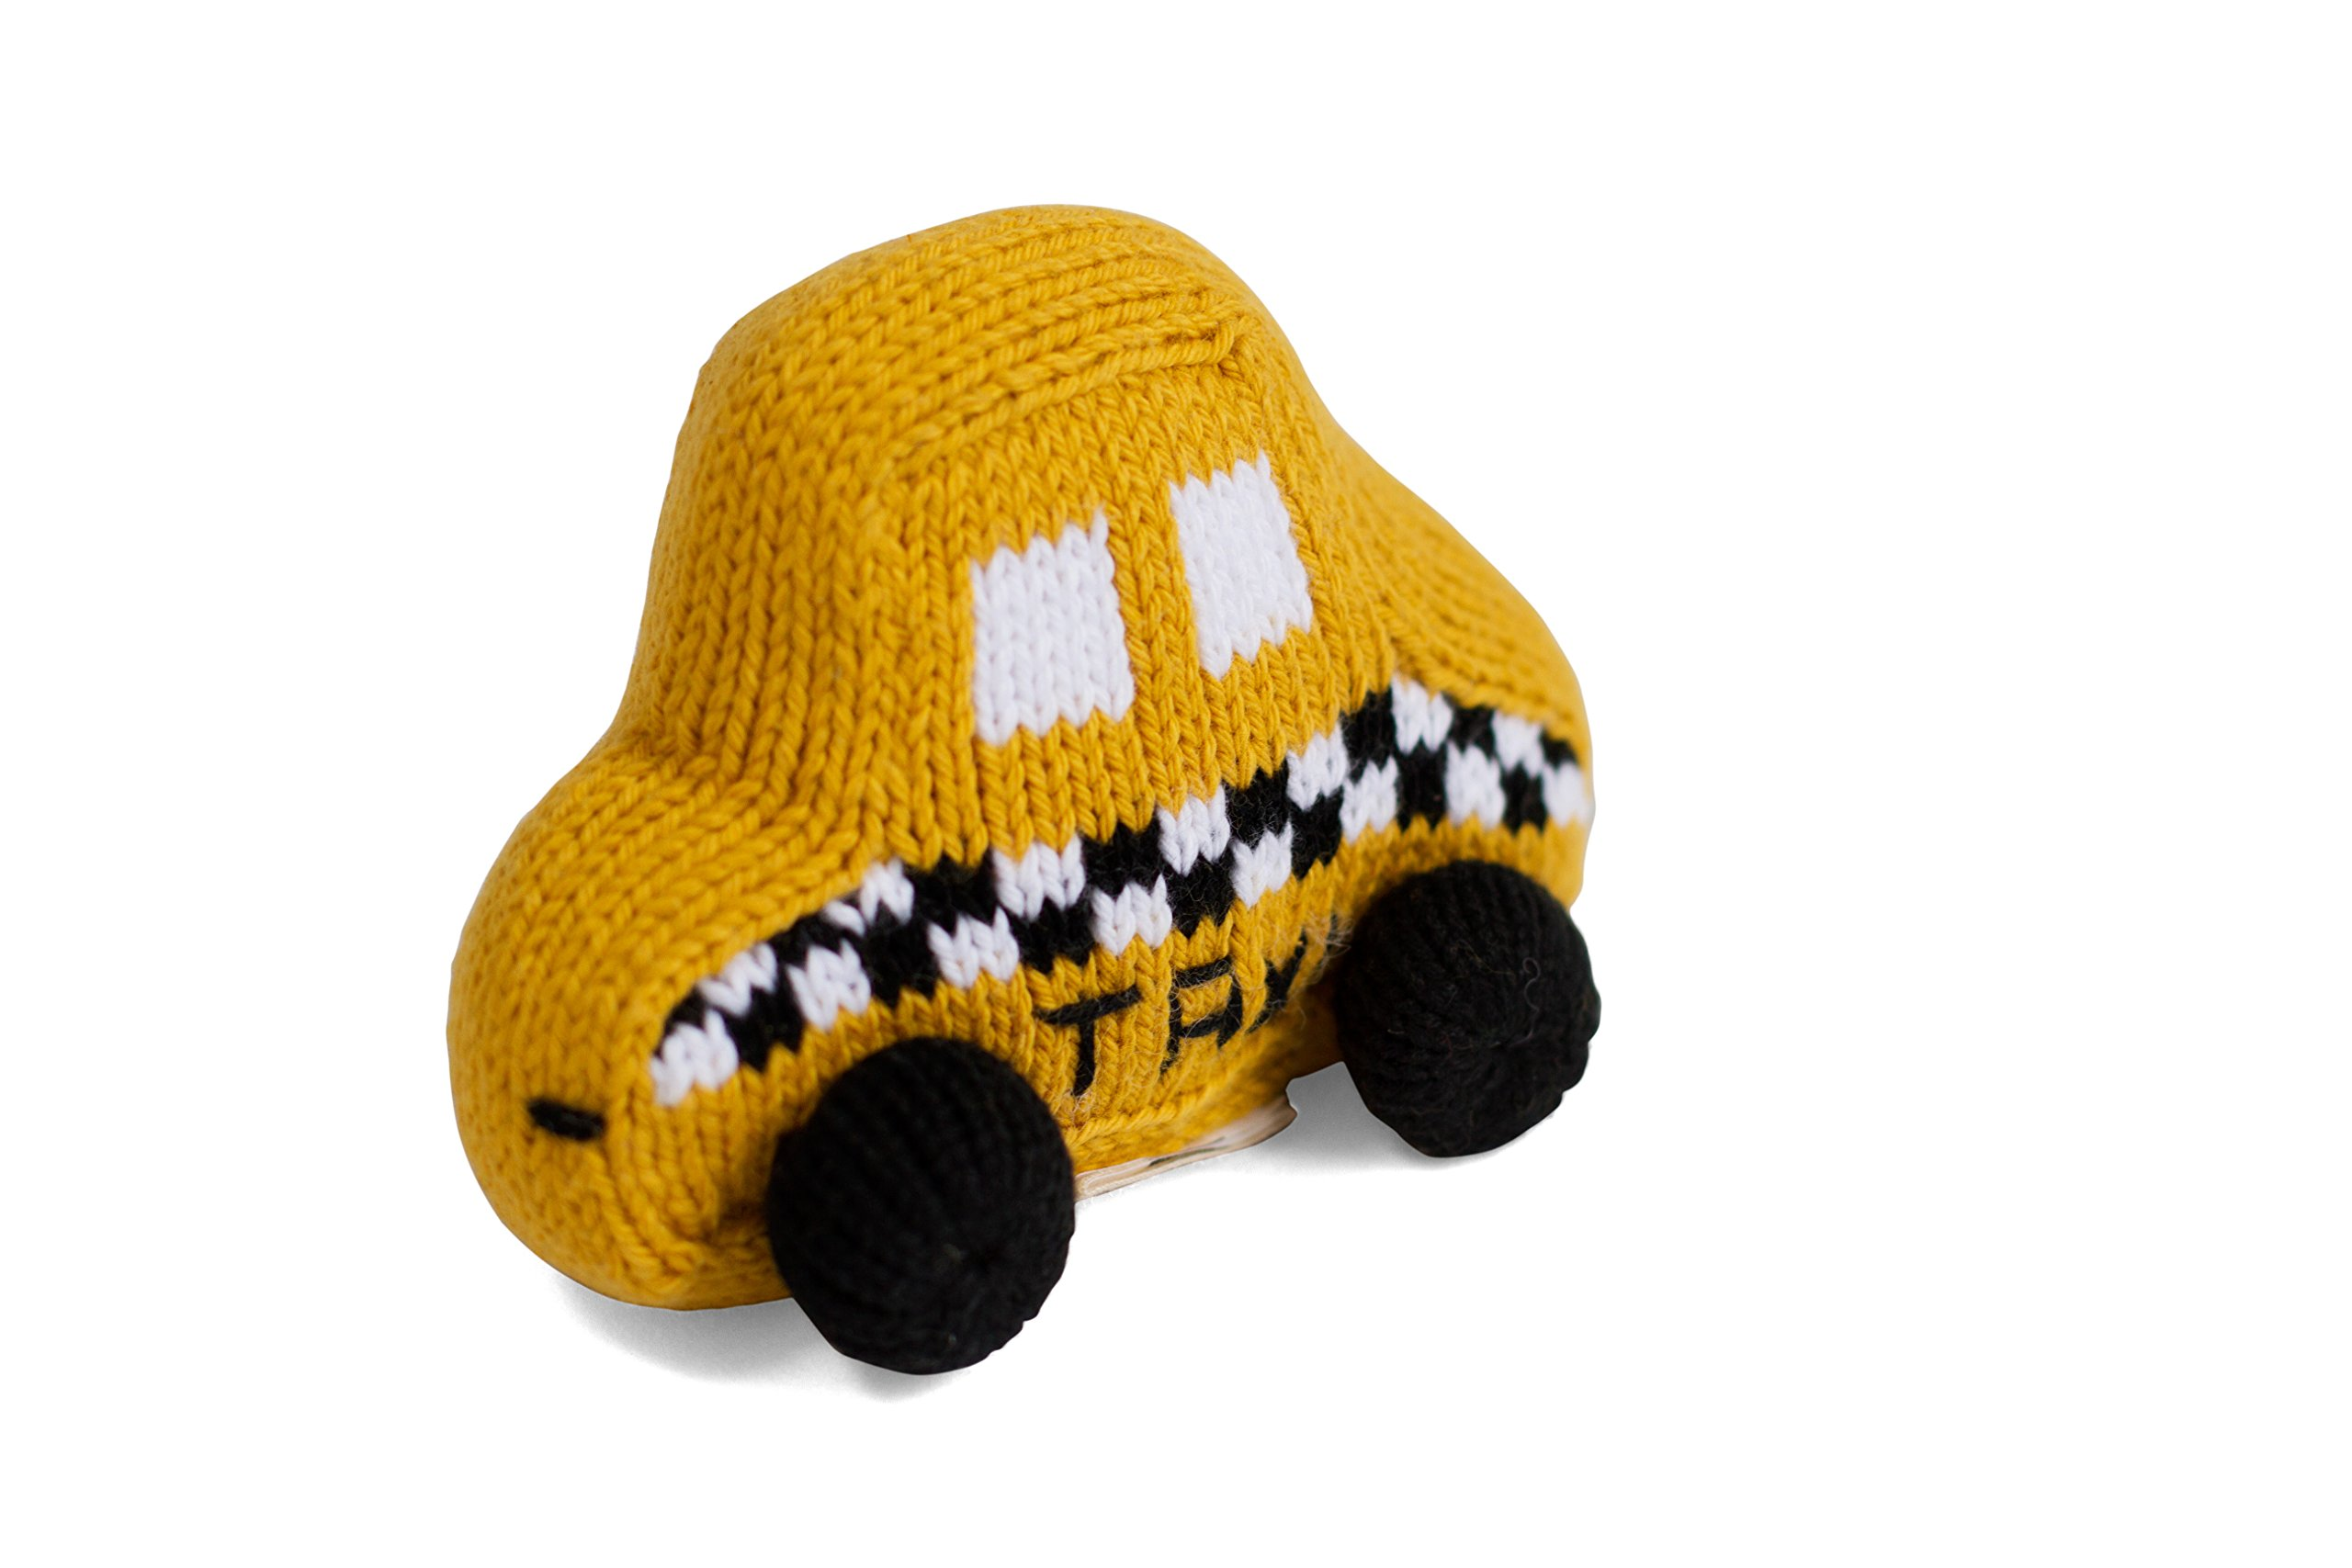 Estella Hand Knit Soft Organic Cotton Baby Rattle Toy, Taxi